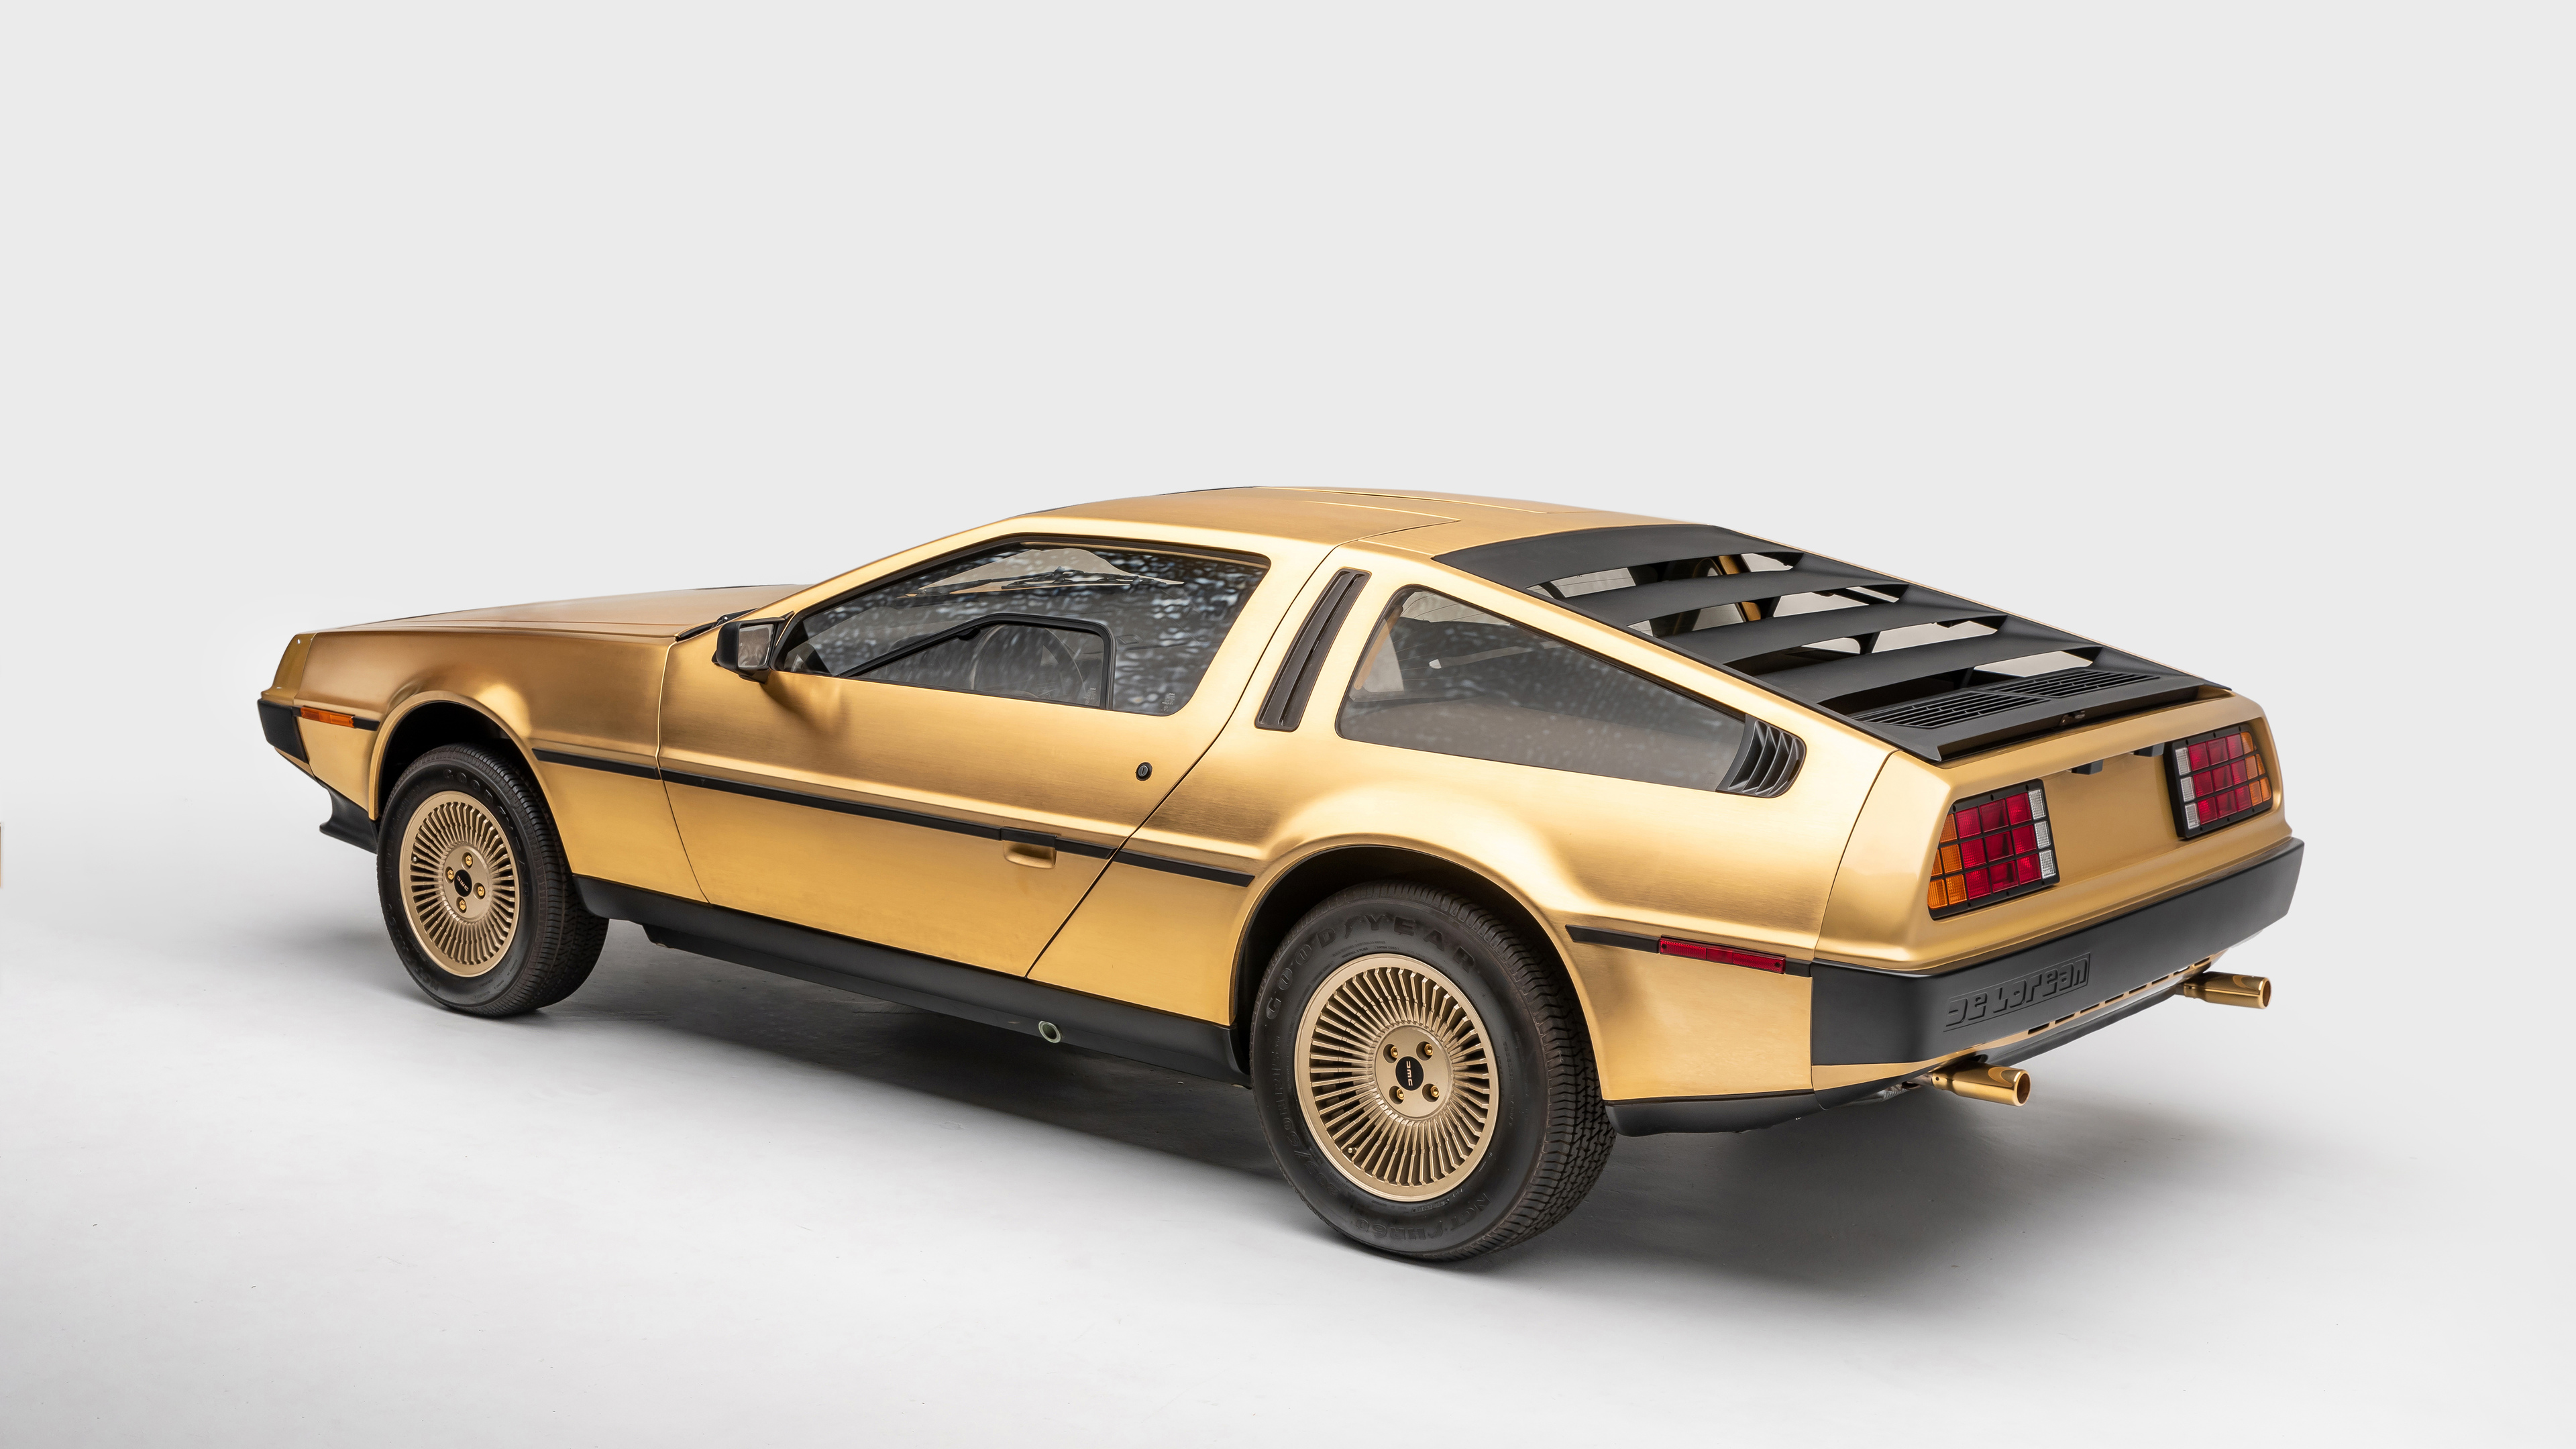 1981 delorean dmc 12 goldplated 1572660983 - 1981 DeLorean DMC 12 Goldplated - hd-wallpapers, cars wallpapers, 5k wallpapers, 4k-wallpapers